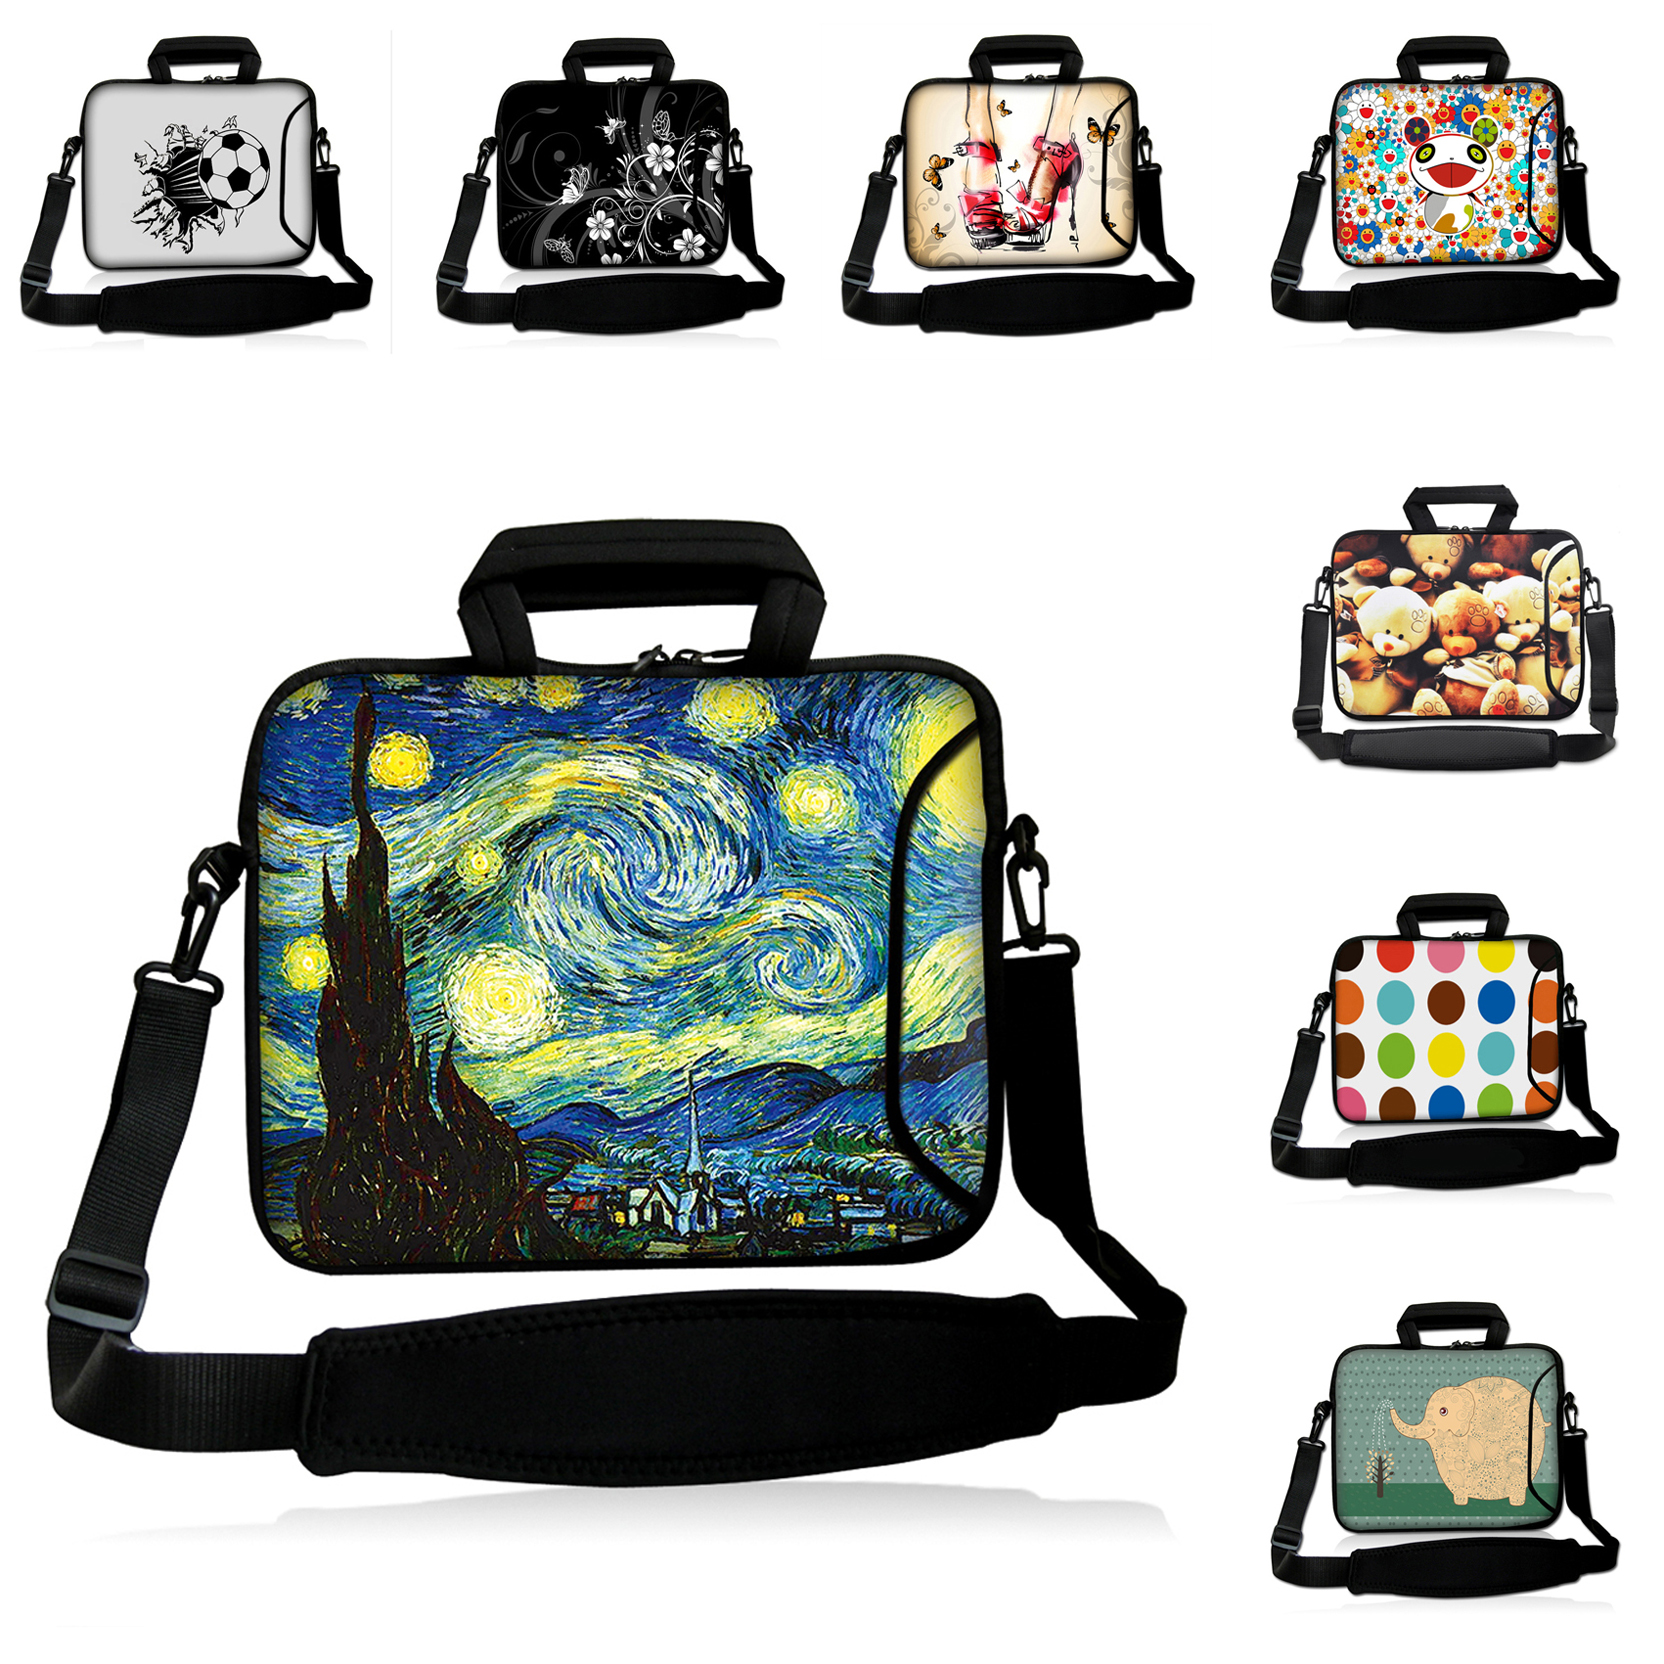 Student E-book Laptop Pouch Cover 15 15.6 15.3 15.4 inch Shoulder Strap Messenger Laptop Computer Bags For Macbook Pro Lenovo HP<br><br>Aliexpress